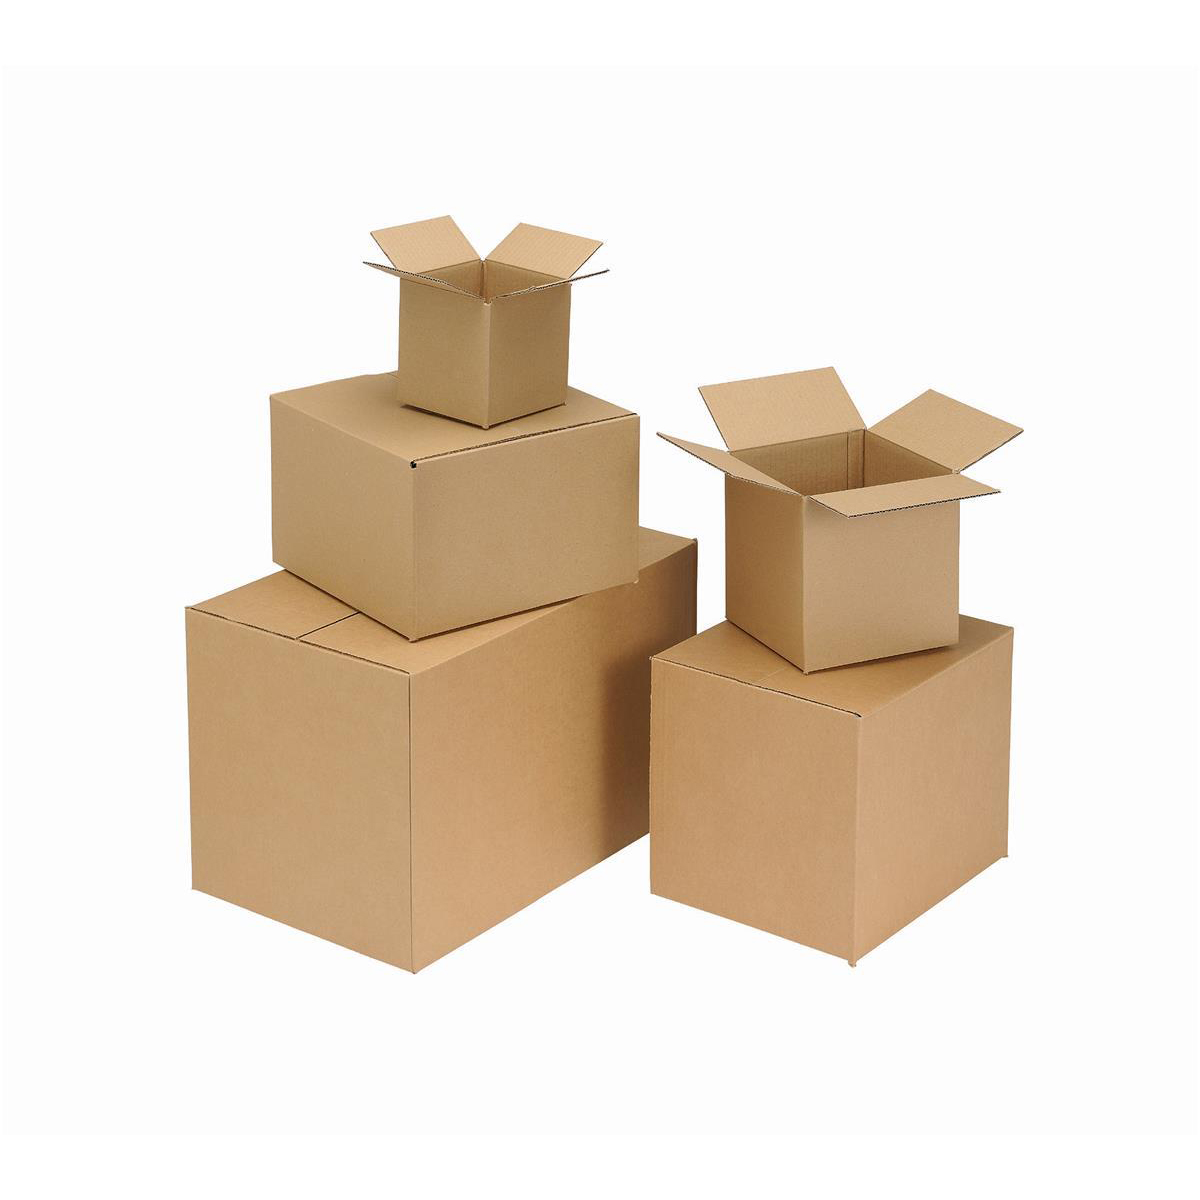 Packaging boxes Packing Carton Single Wall Strong Flat Packed 305x254x254mm Brown Pack 25